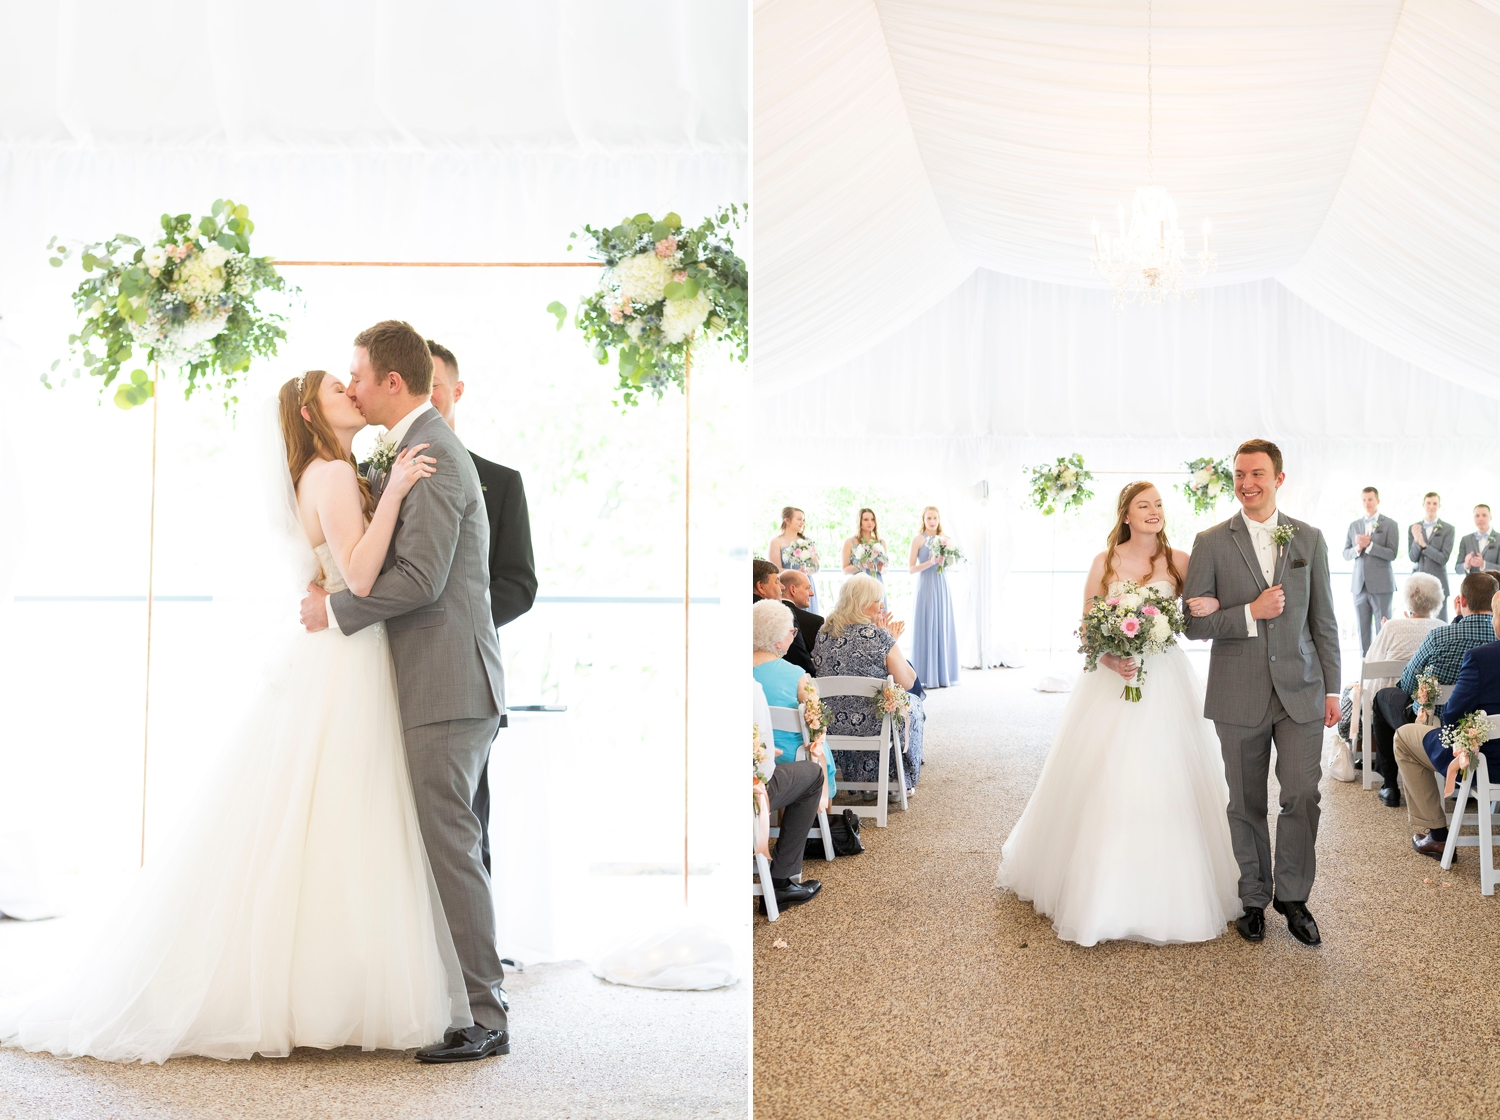 The lakes golf and country club, Westerville ohio, Westerville wedding, dublin wedding, columbus wedding photography, vow renewal, tent wedding, country club wedding, golf course wedding, christian wedding, wedding ceremony, first kiss, tradition wedding, blue wedding